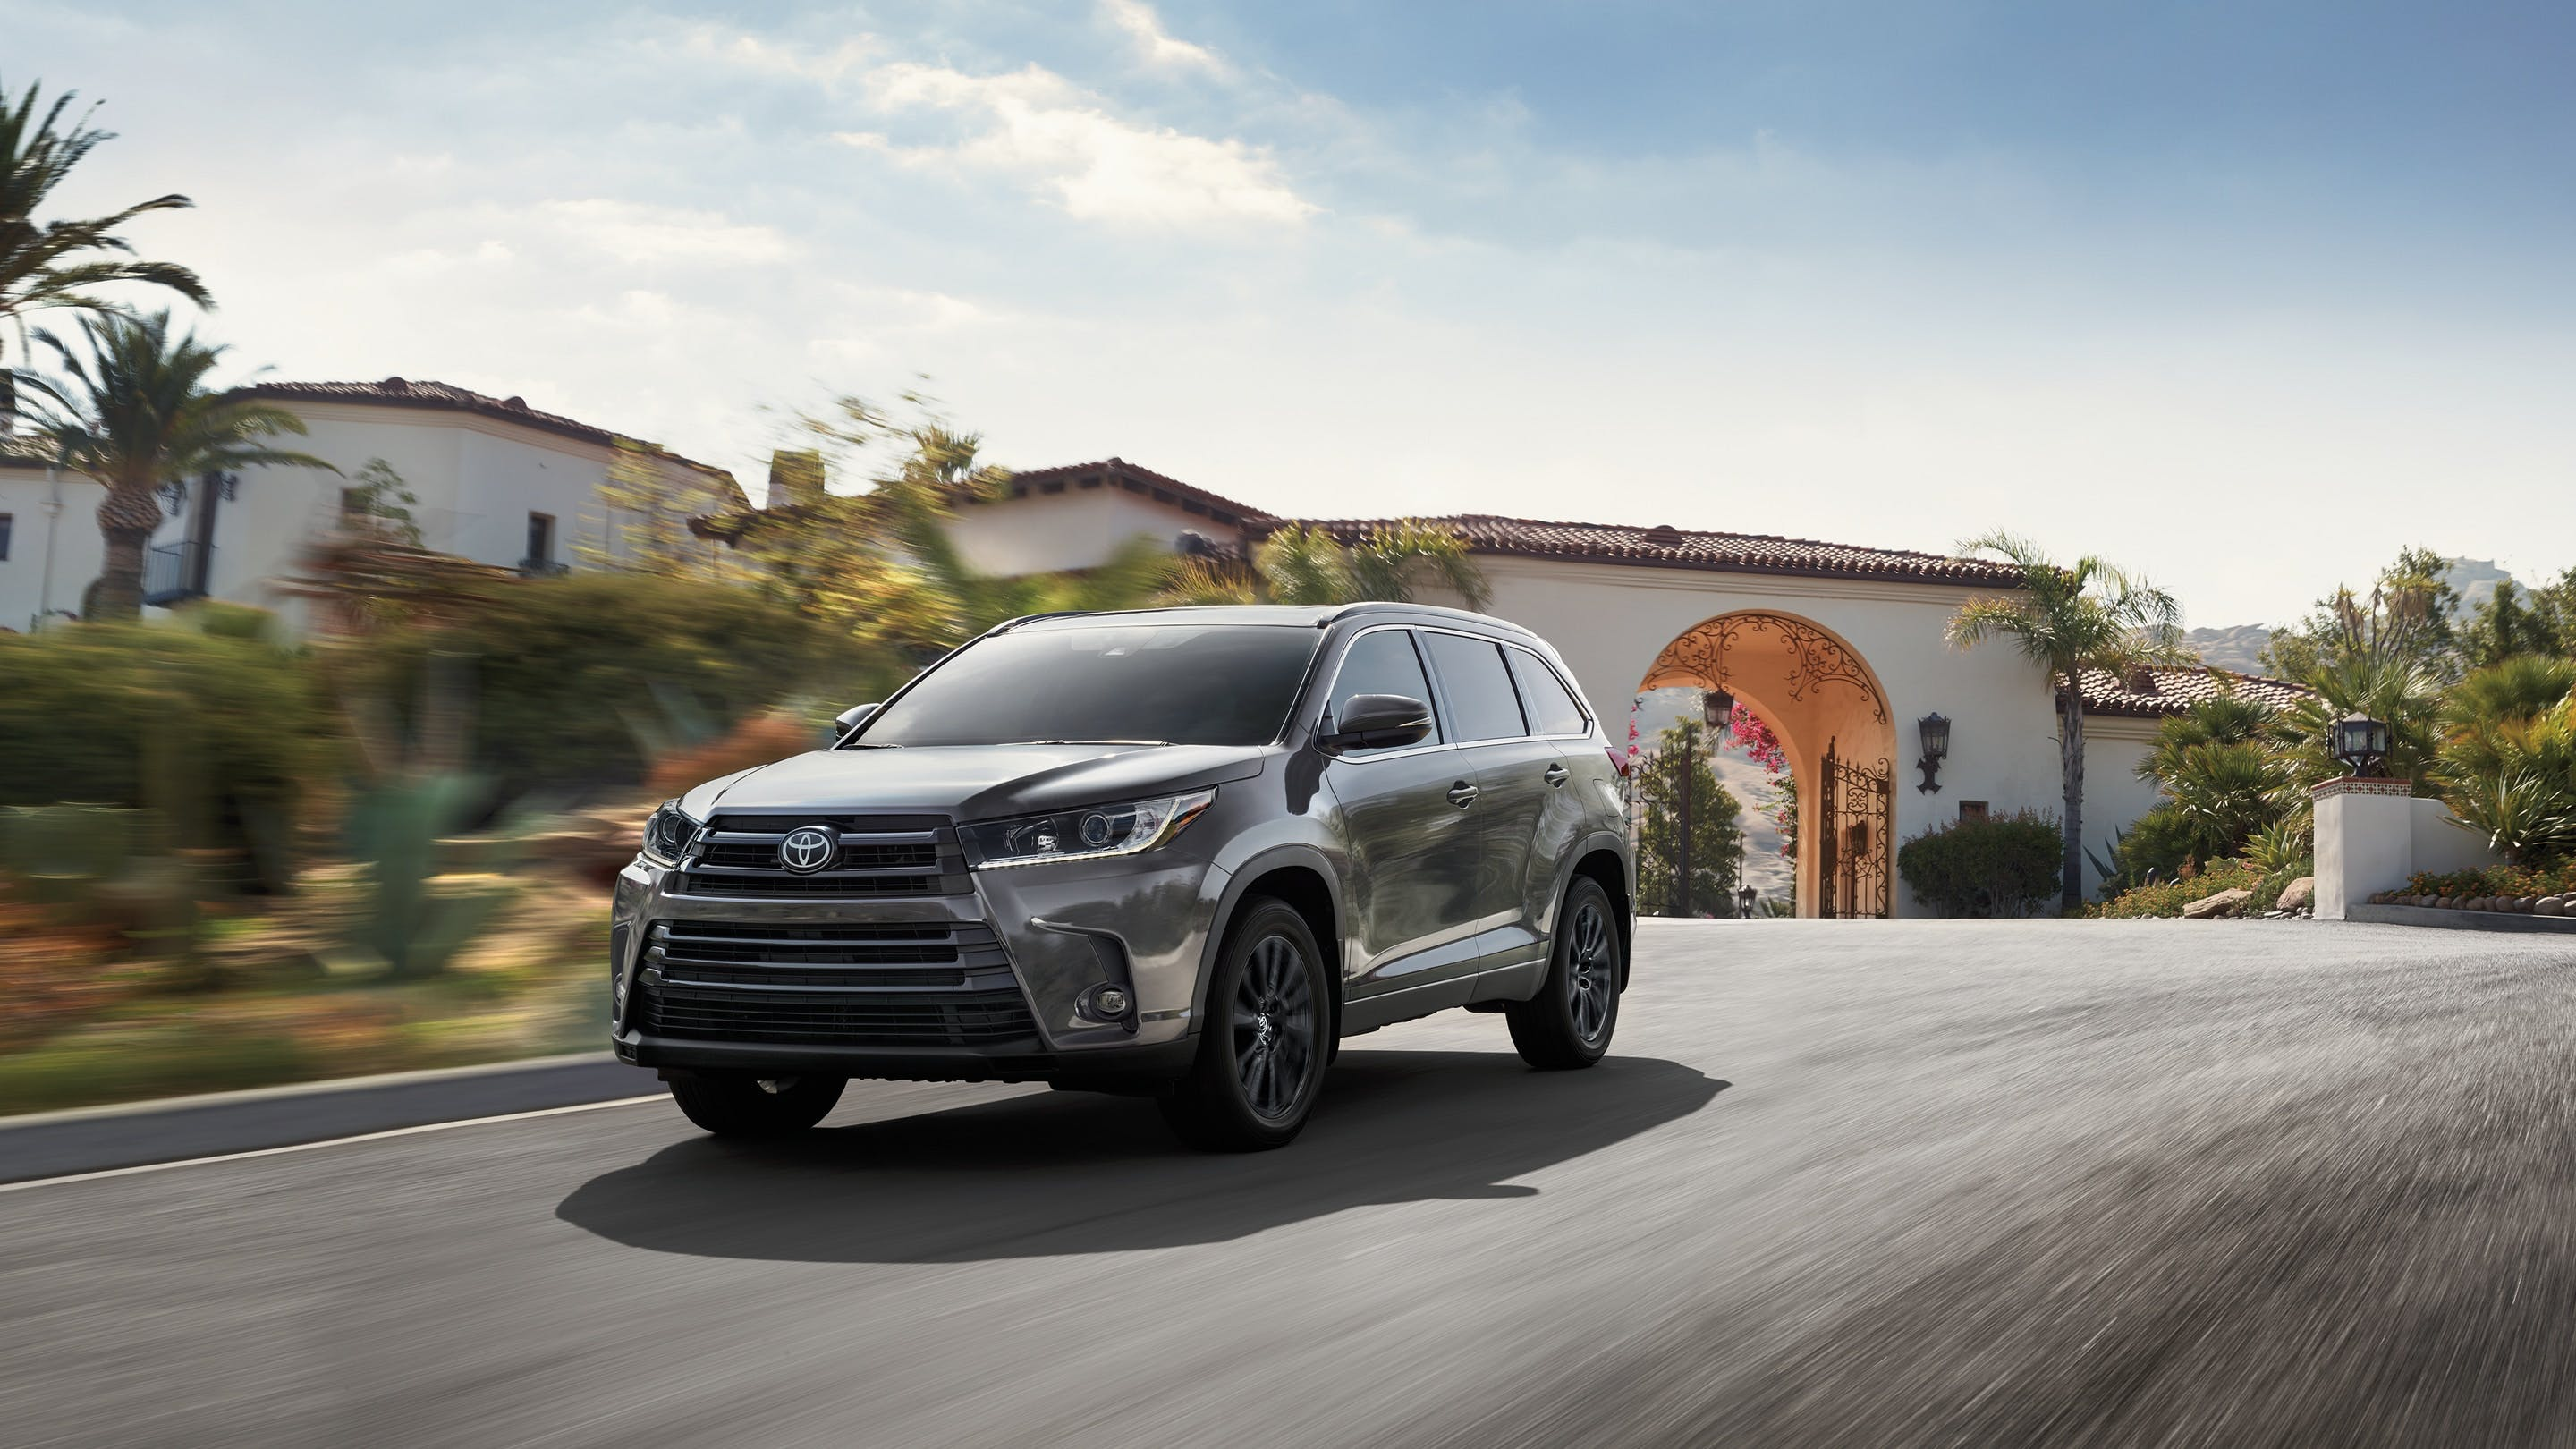 Test Drive the 2019 Toyota Highlander near Pittsburgh PA